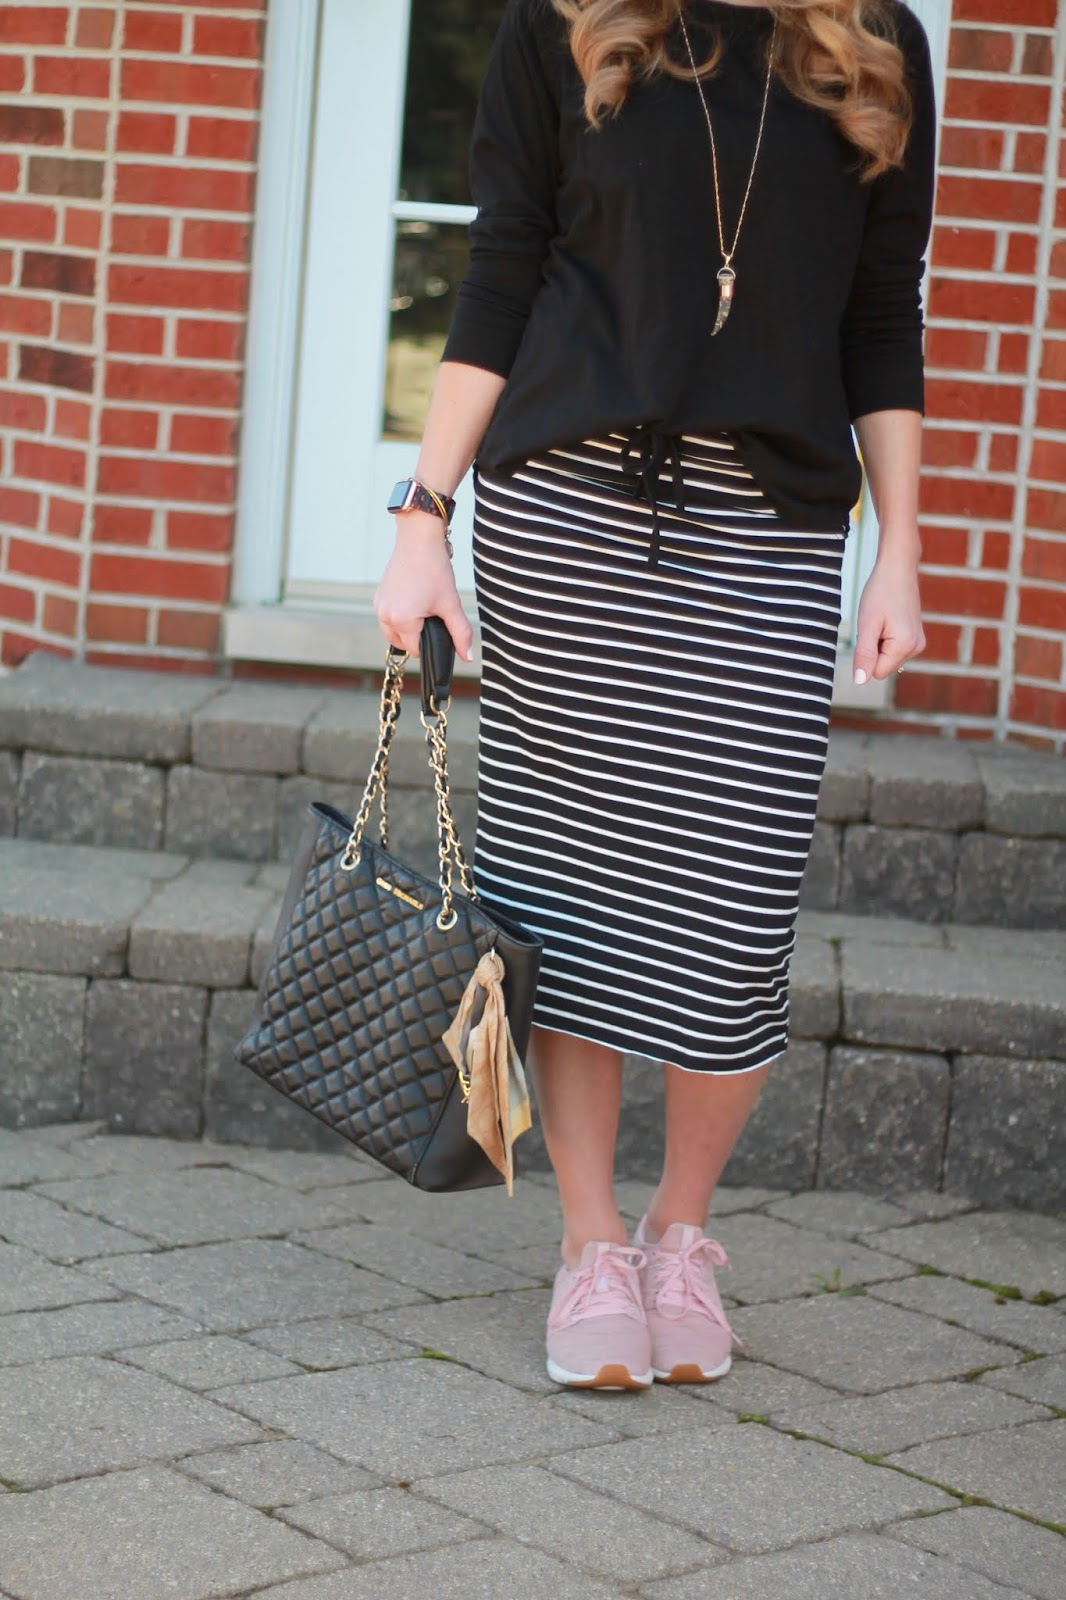 ABEO everett shoes, blush tennis shoes, joggers, striped dress, olive utility vest, striped midi skirt